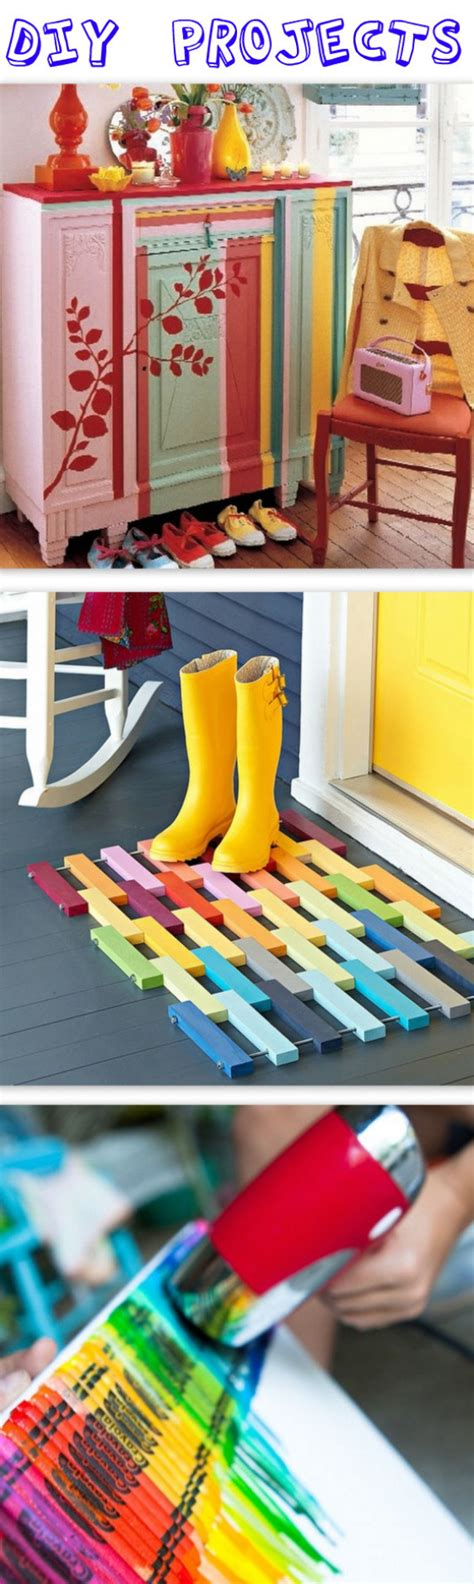 Projects Diy House Projects Bright Diy Projects Easy Diy Projects Bright Bold